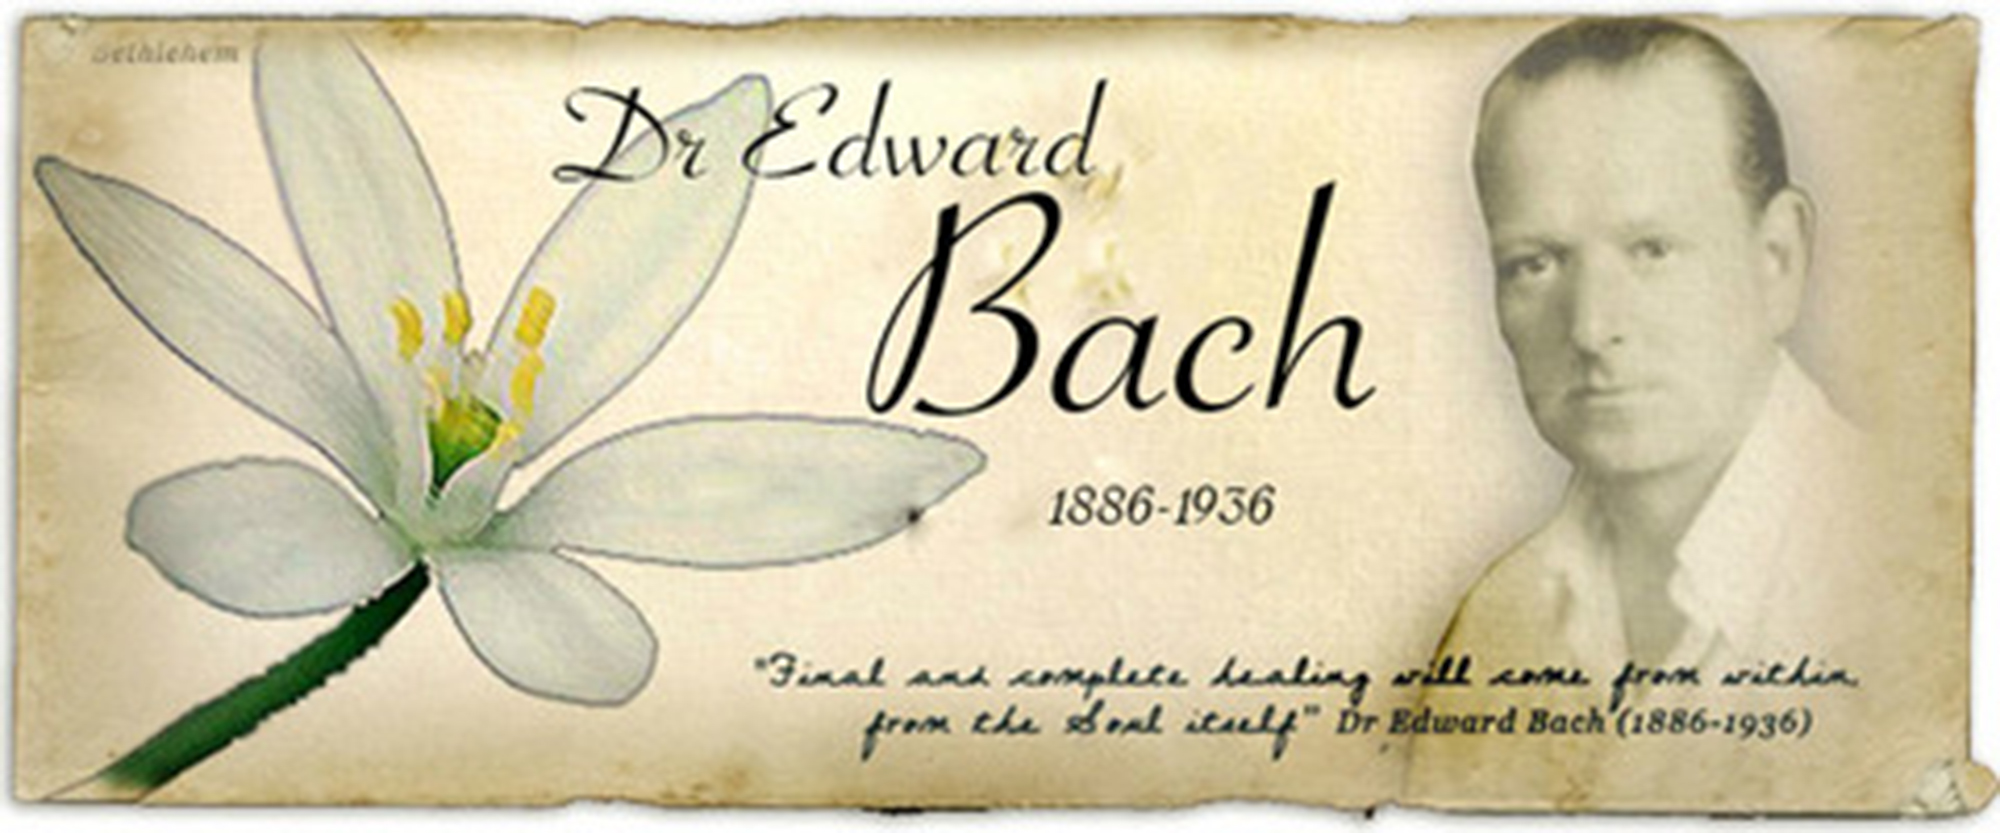 Dr_Edward_Bach_large